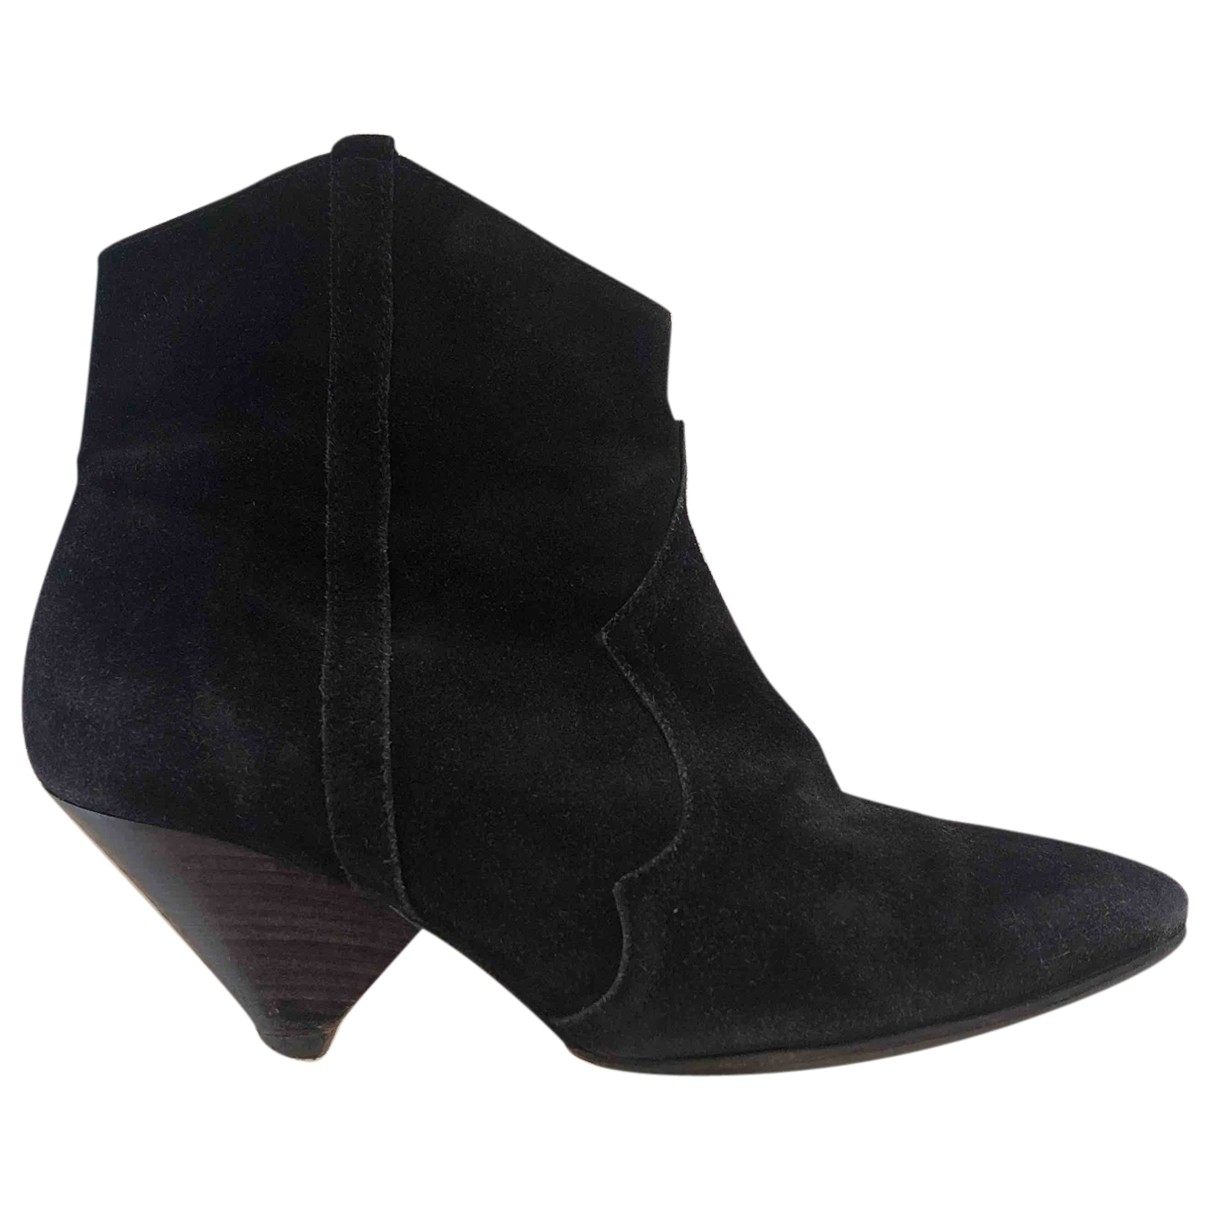 Isabel Marant \N Black Suede Ankle boots for Women 36 EU